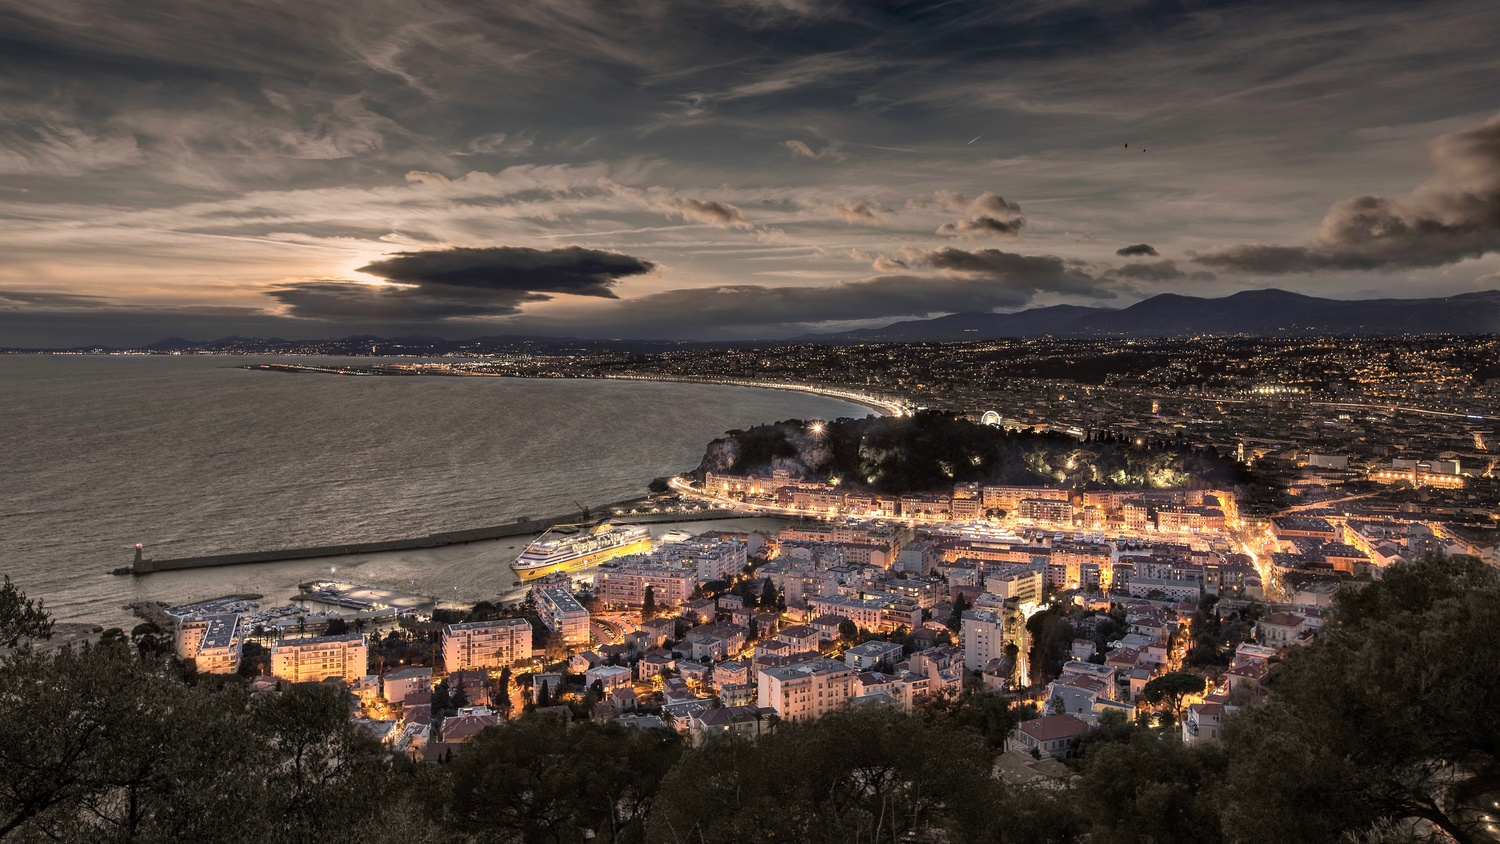 The city of Nice (France) by Denis Degioanni